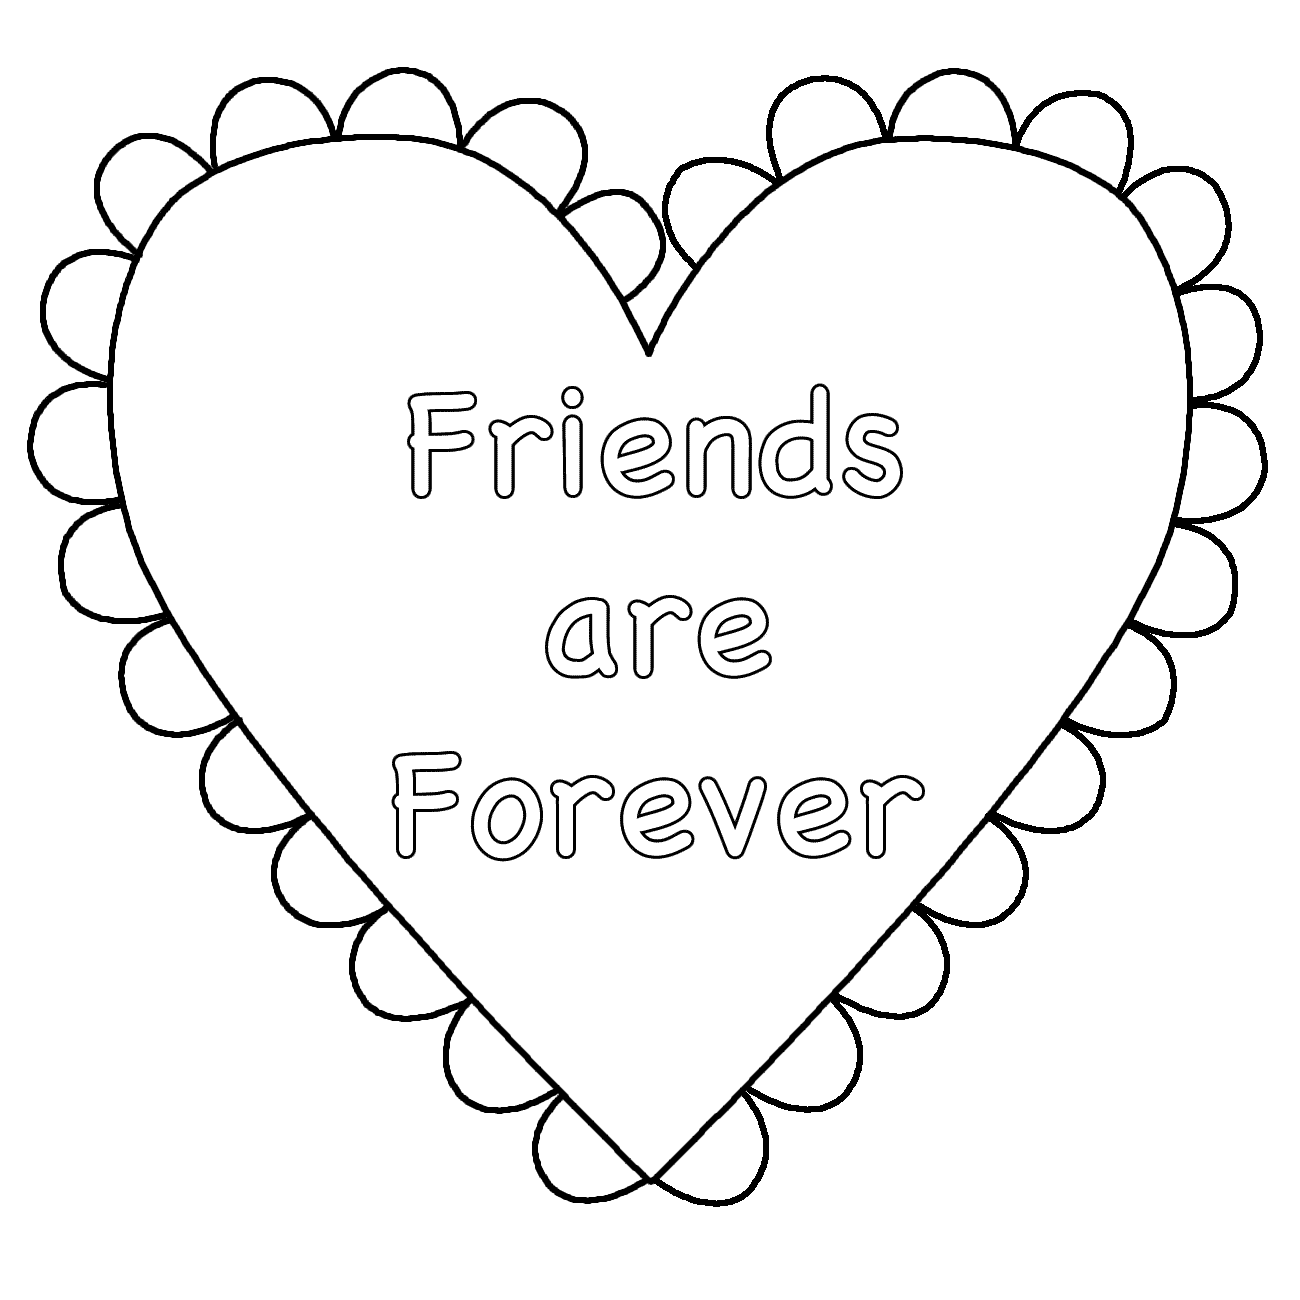 Heart Friends Are Forever Coloring Page Valentine S Day Heart Coloring Pages Valentine Coloring Pages Free Printable Coloring Pages